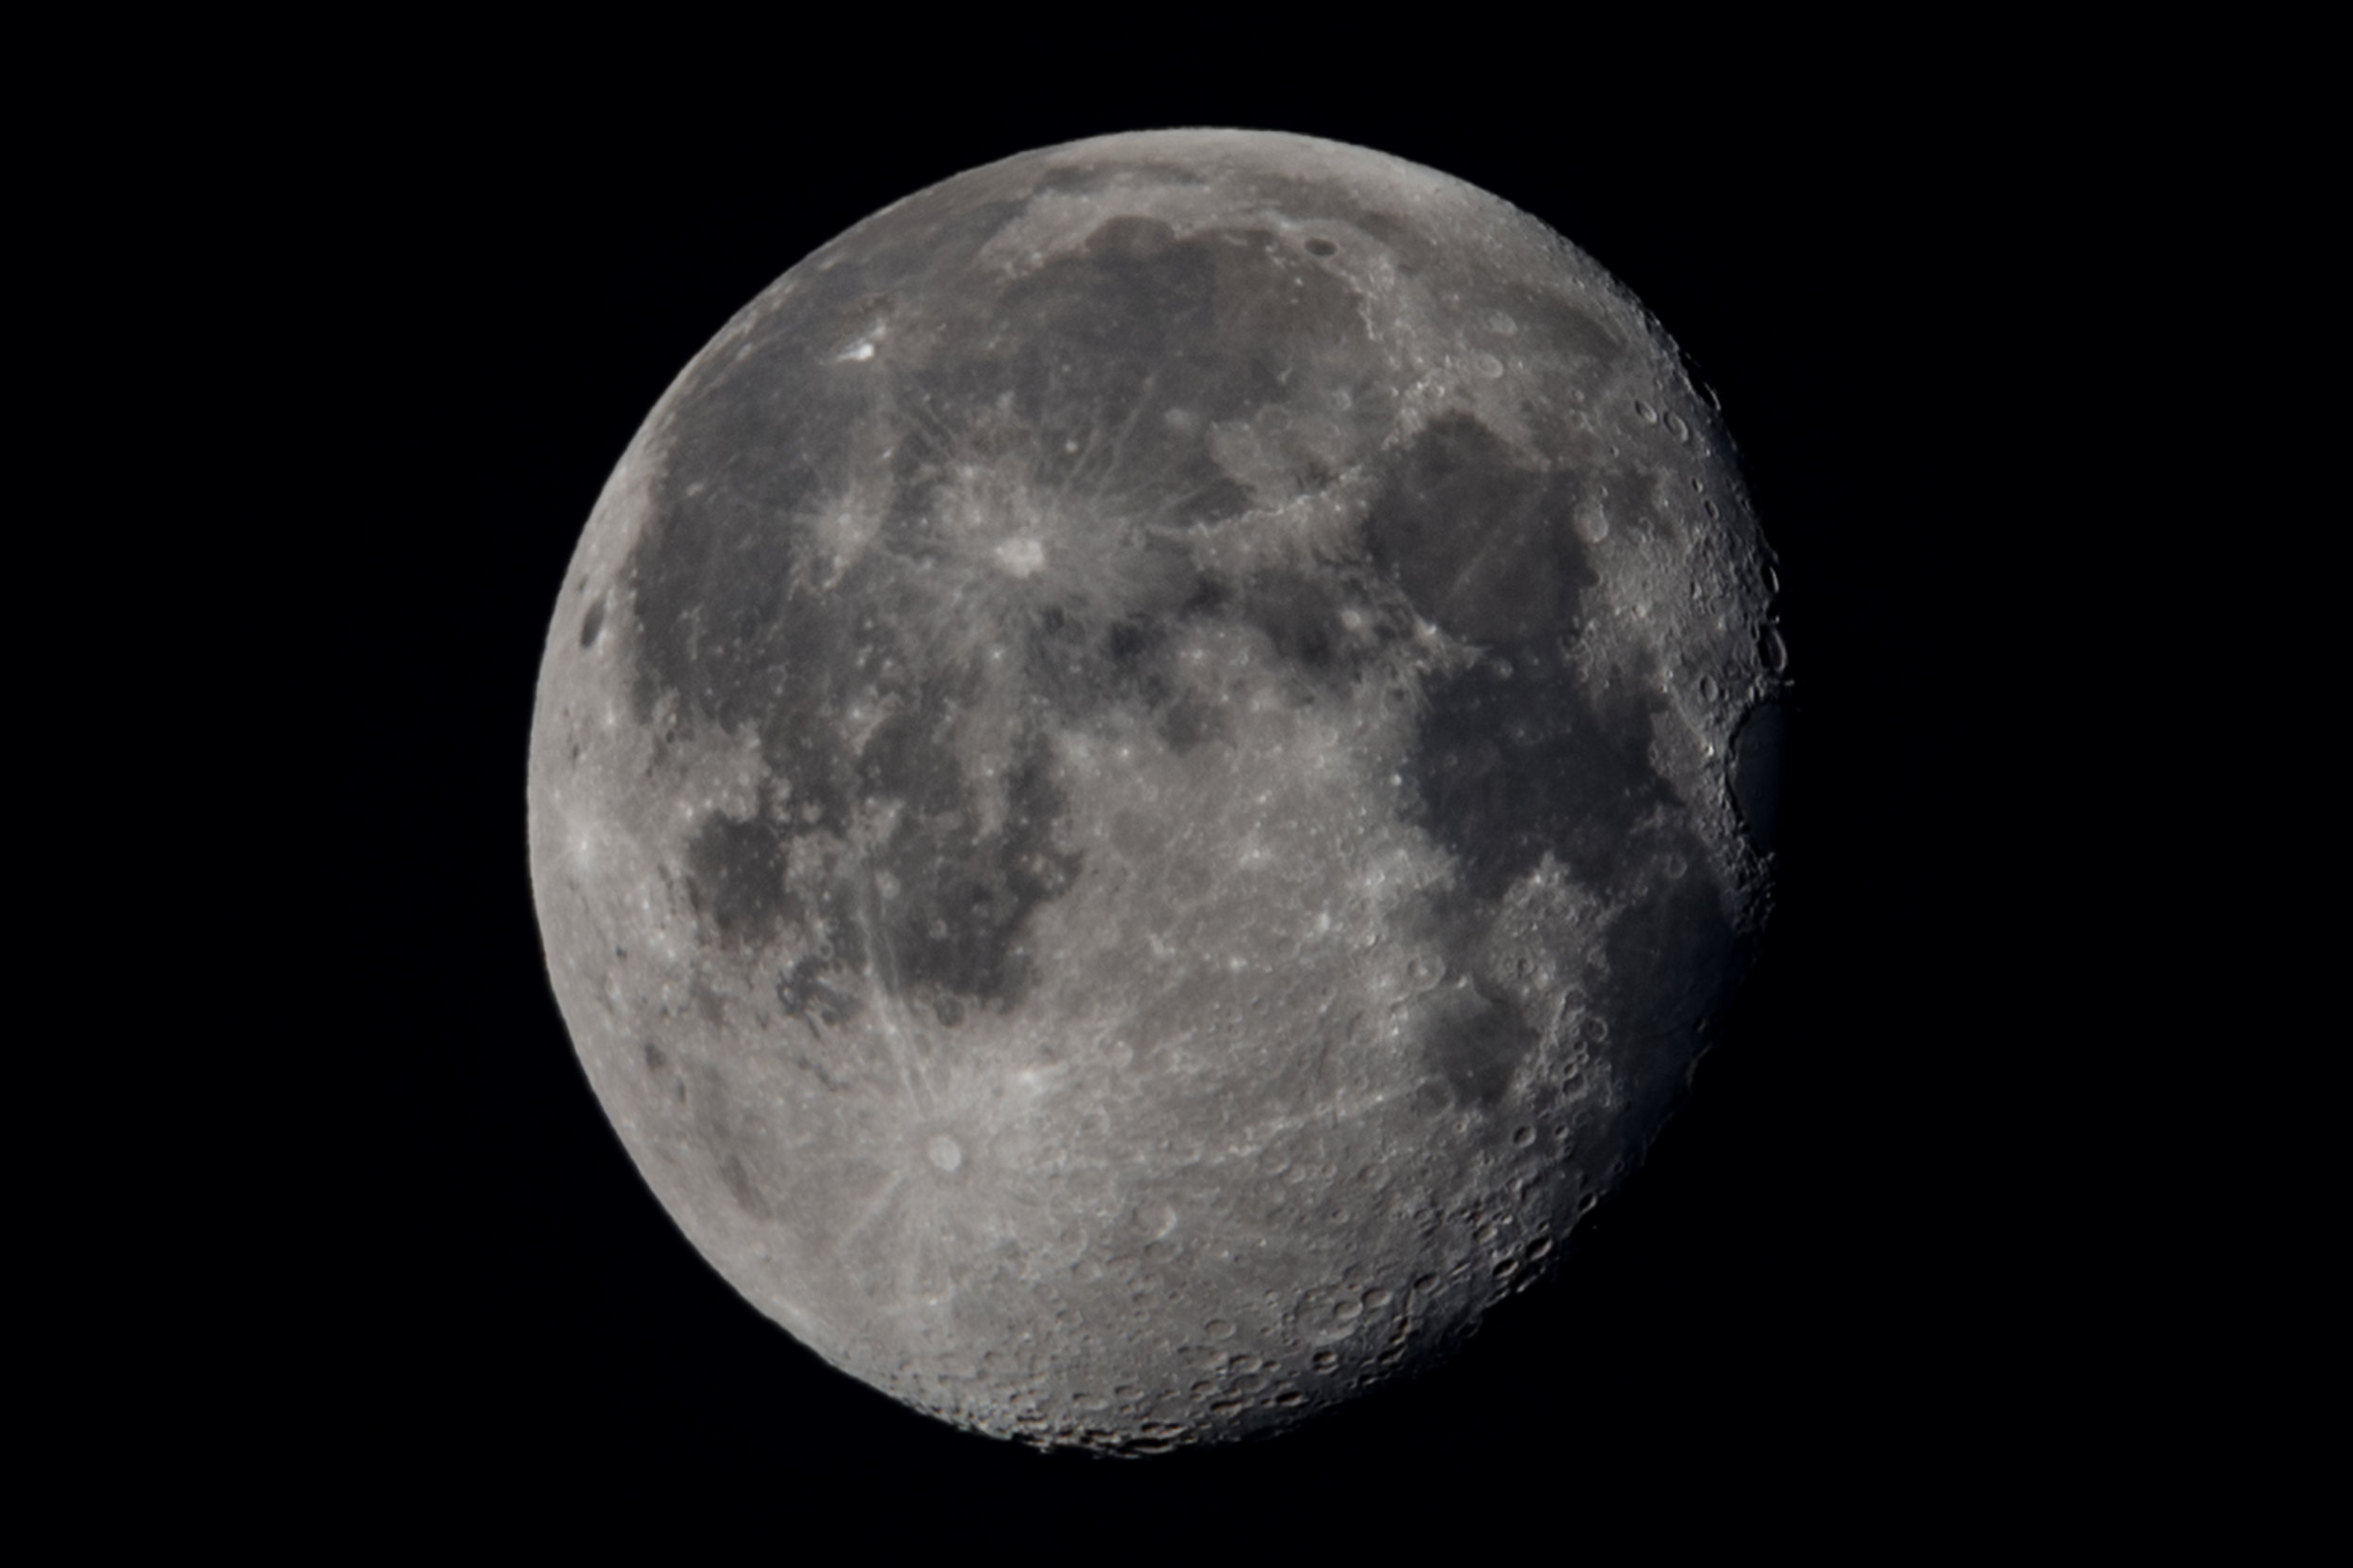 Moon - Single frame output